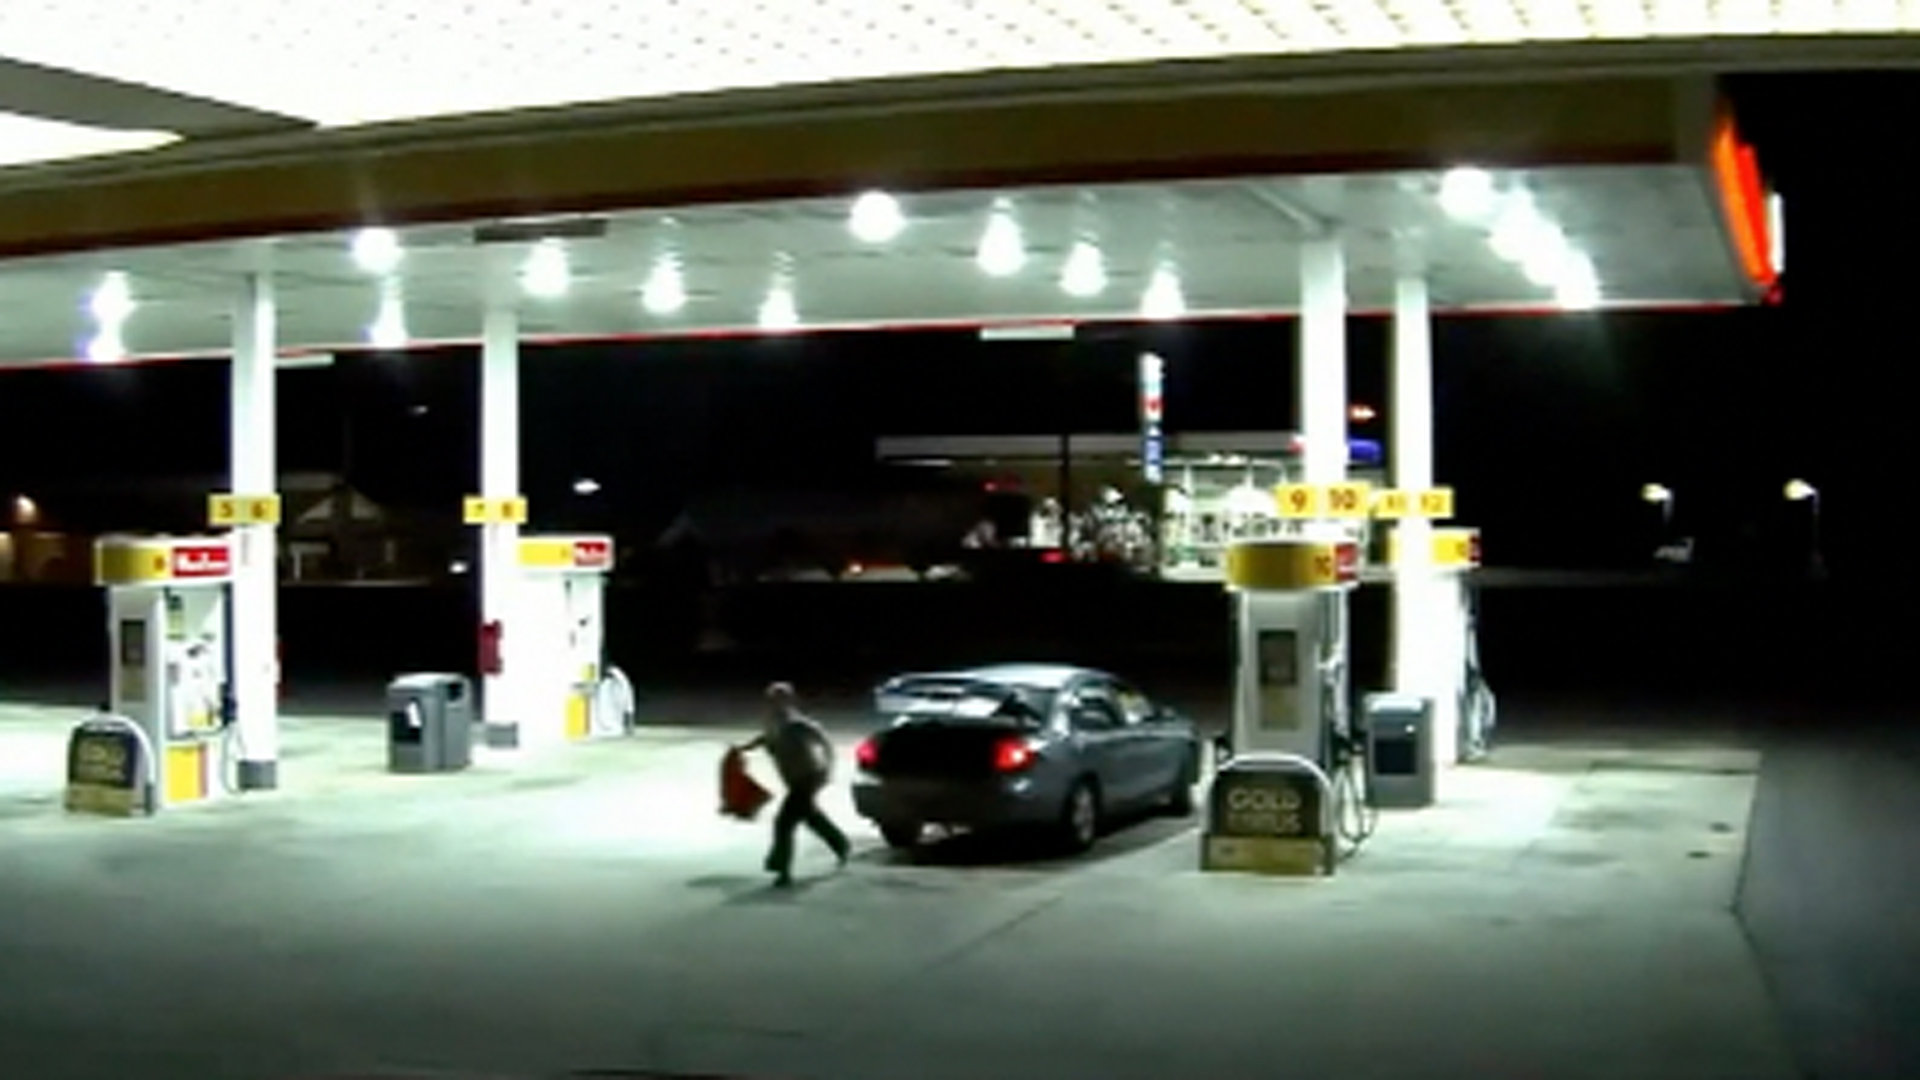 A woman escapes from a kidnapping attempt in Alabama on Oct. 30, 2017. (Credit: Chilton County Sheriff's Office)